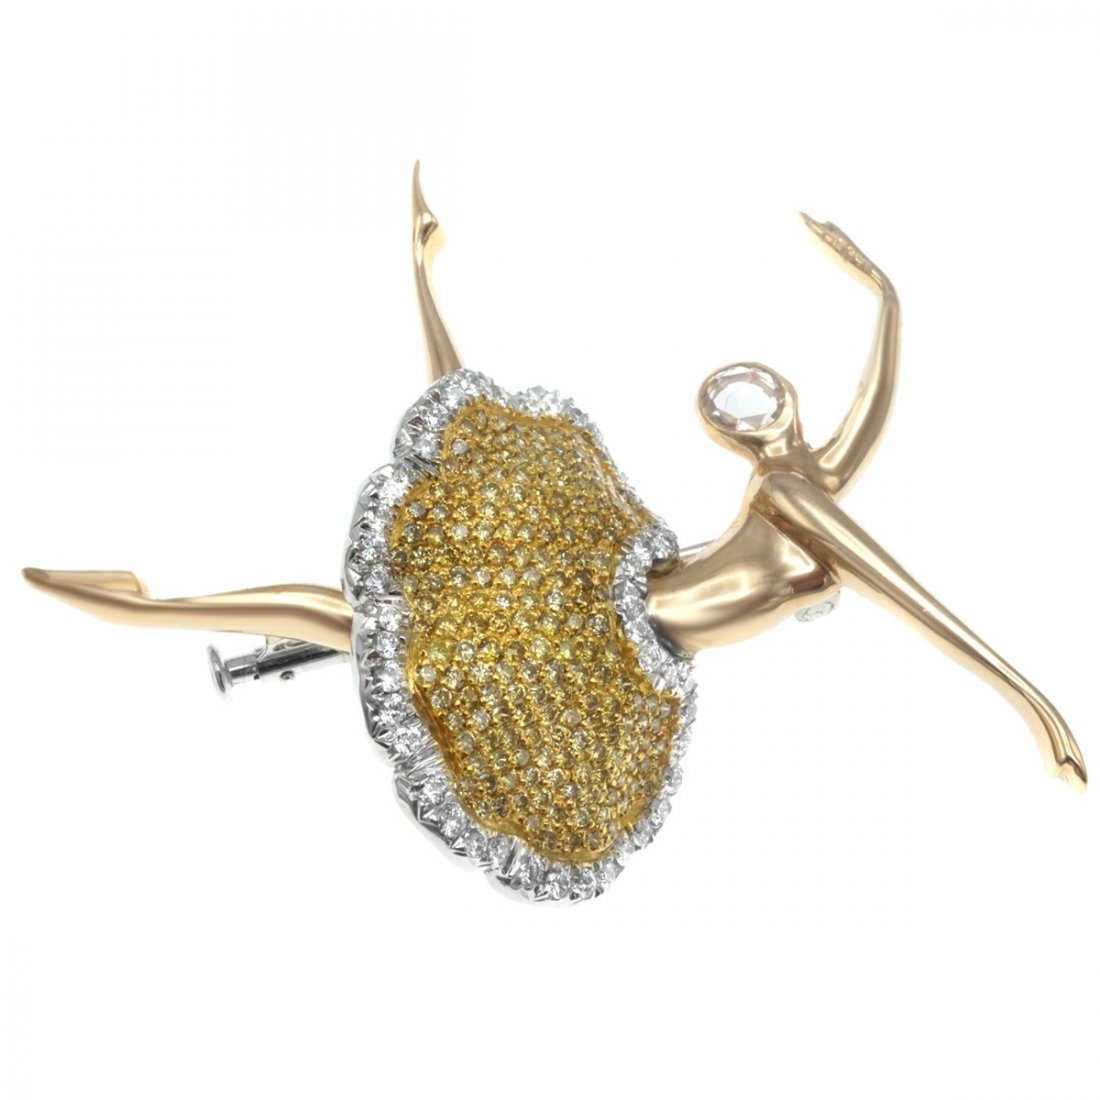 FANCY YELLOW DIAMOND AND 18 KARAT GOLD BALLERINA BROOCH